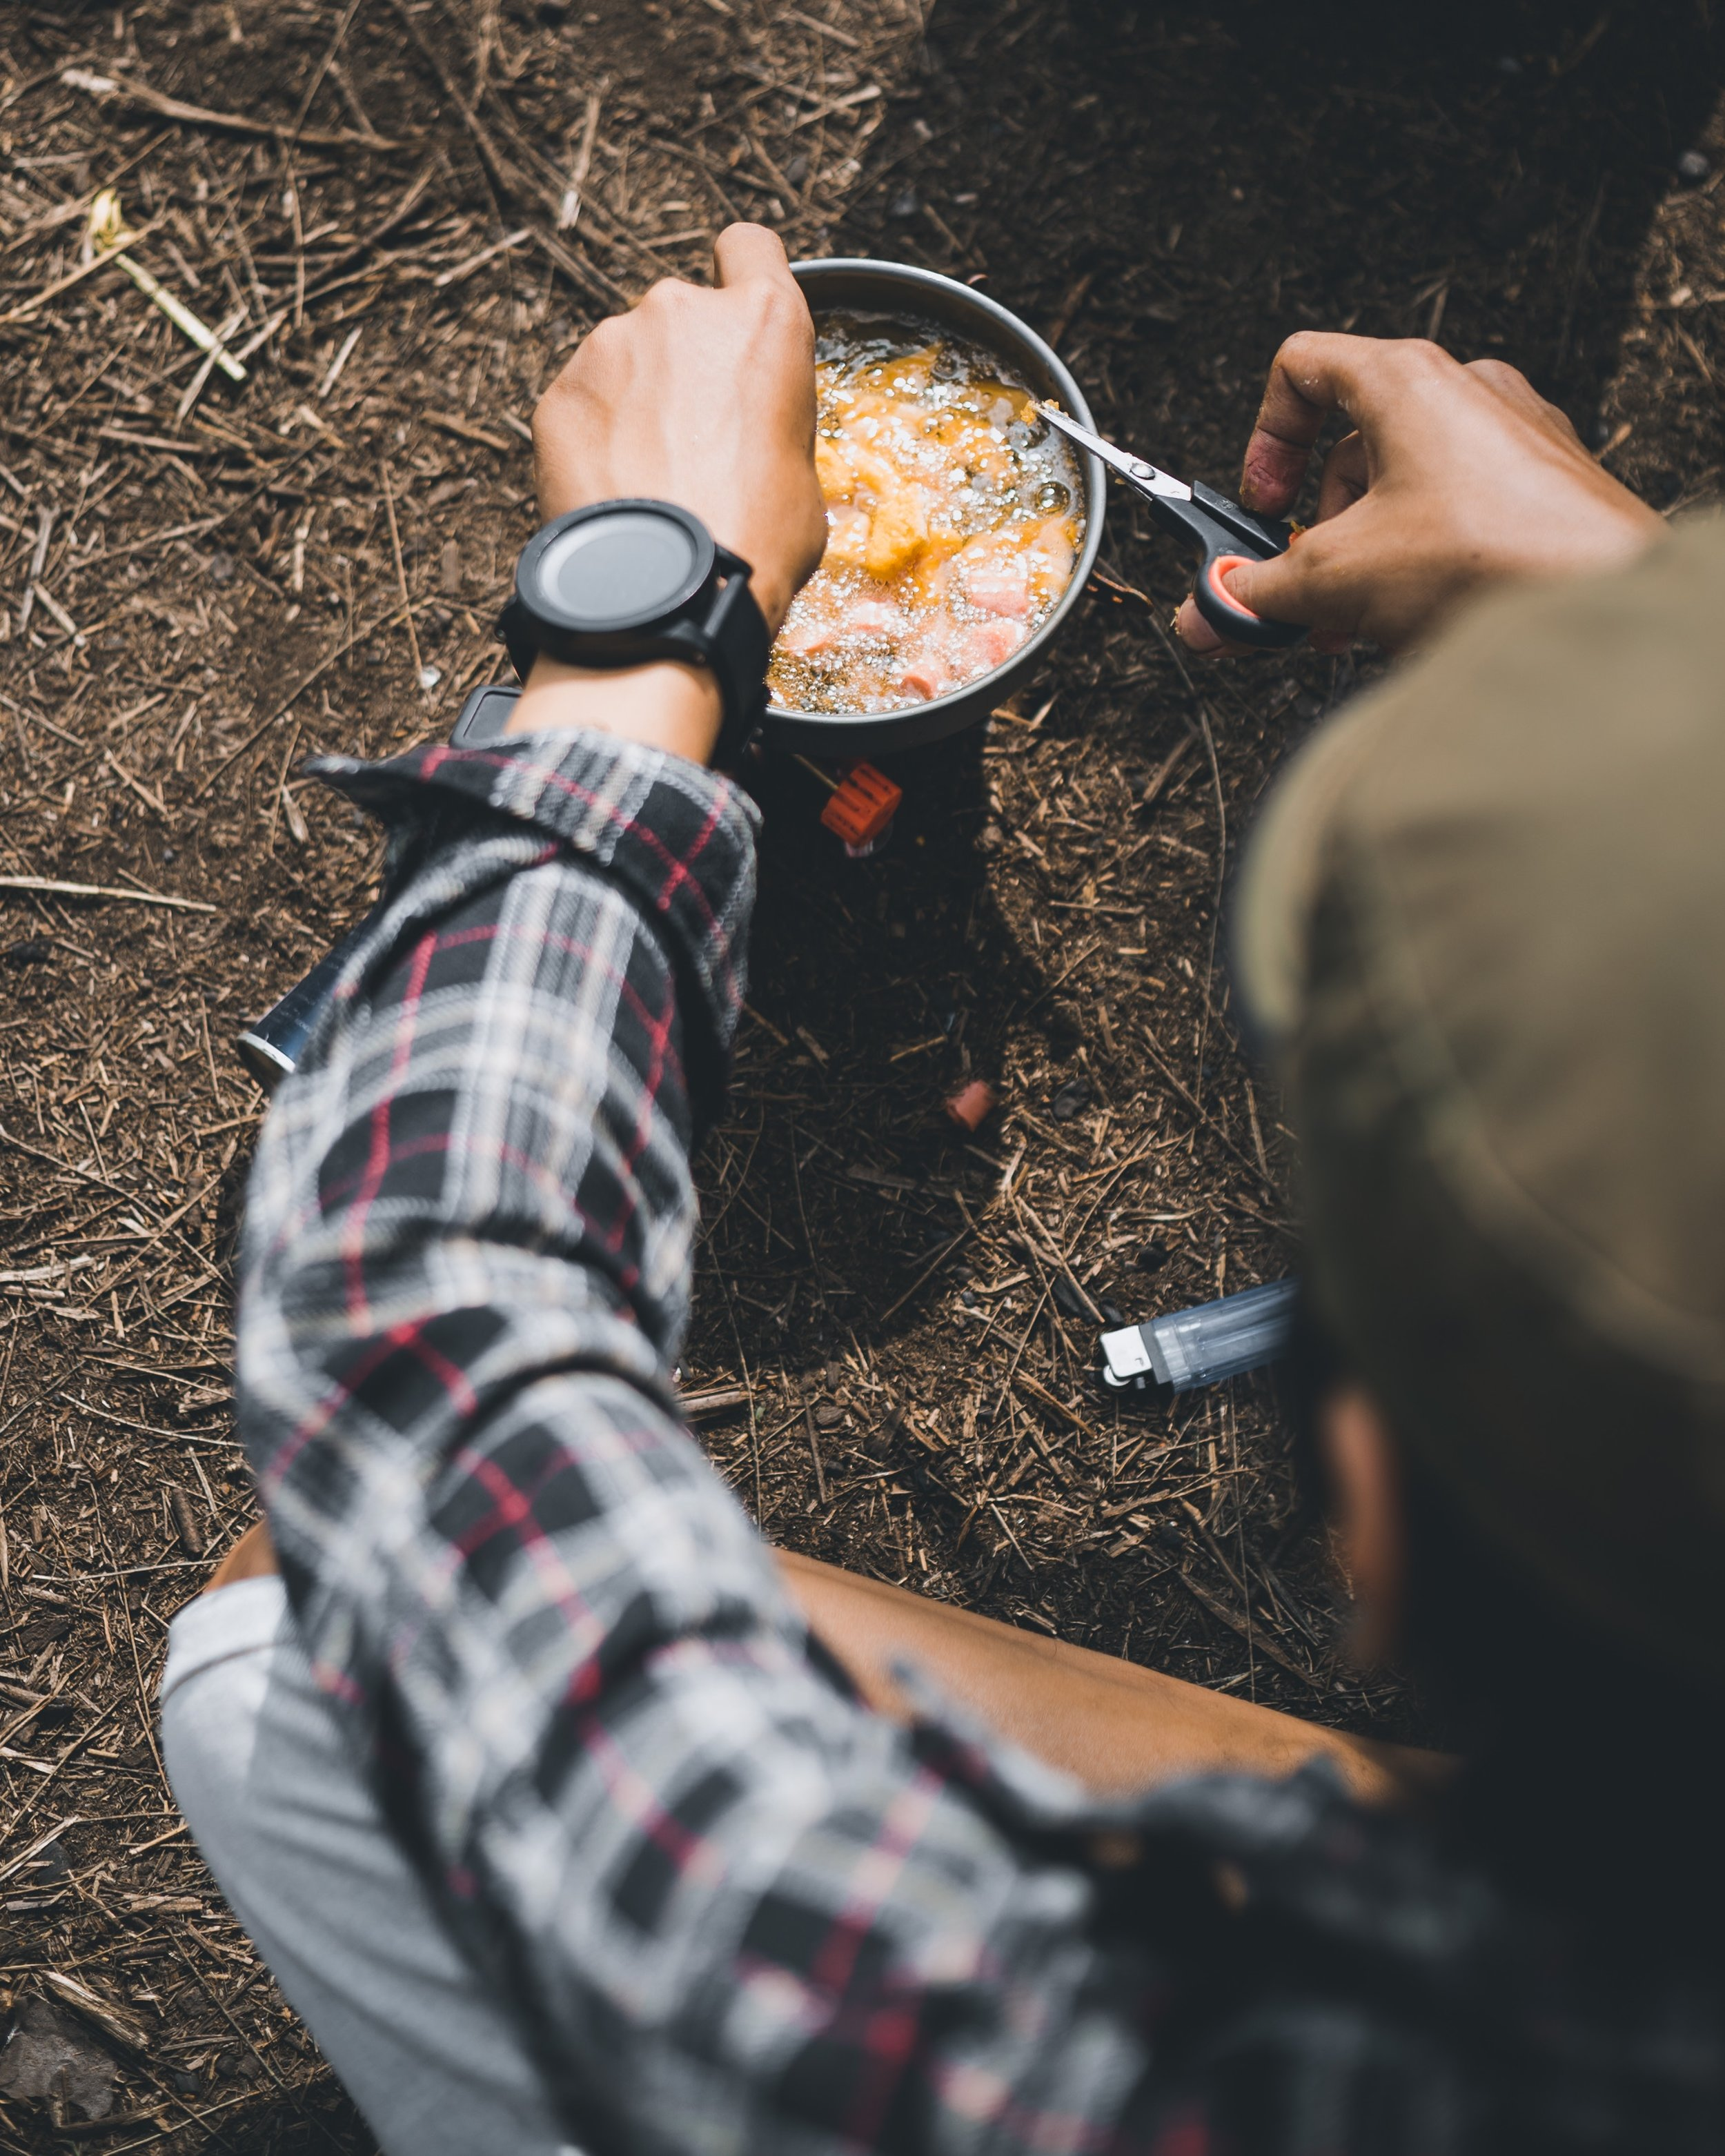 Sample Meal Plan for an Overnight Camping Trip - DINNERHearty soup or stew like this one with plenty of protein,with some cheese on the side (cheese packs a lot of calories per weight, and therefore makes great hiking/camping food) and some chocolate (preferably paper-wrapped) for dessertBREAKFASTCoffee, oatmeal with brown sugar and raisinsSNACKPeanut butter oat bars like these (peanut butter also has a great calorie-to-weight ratio)